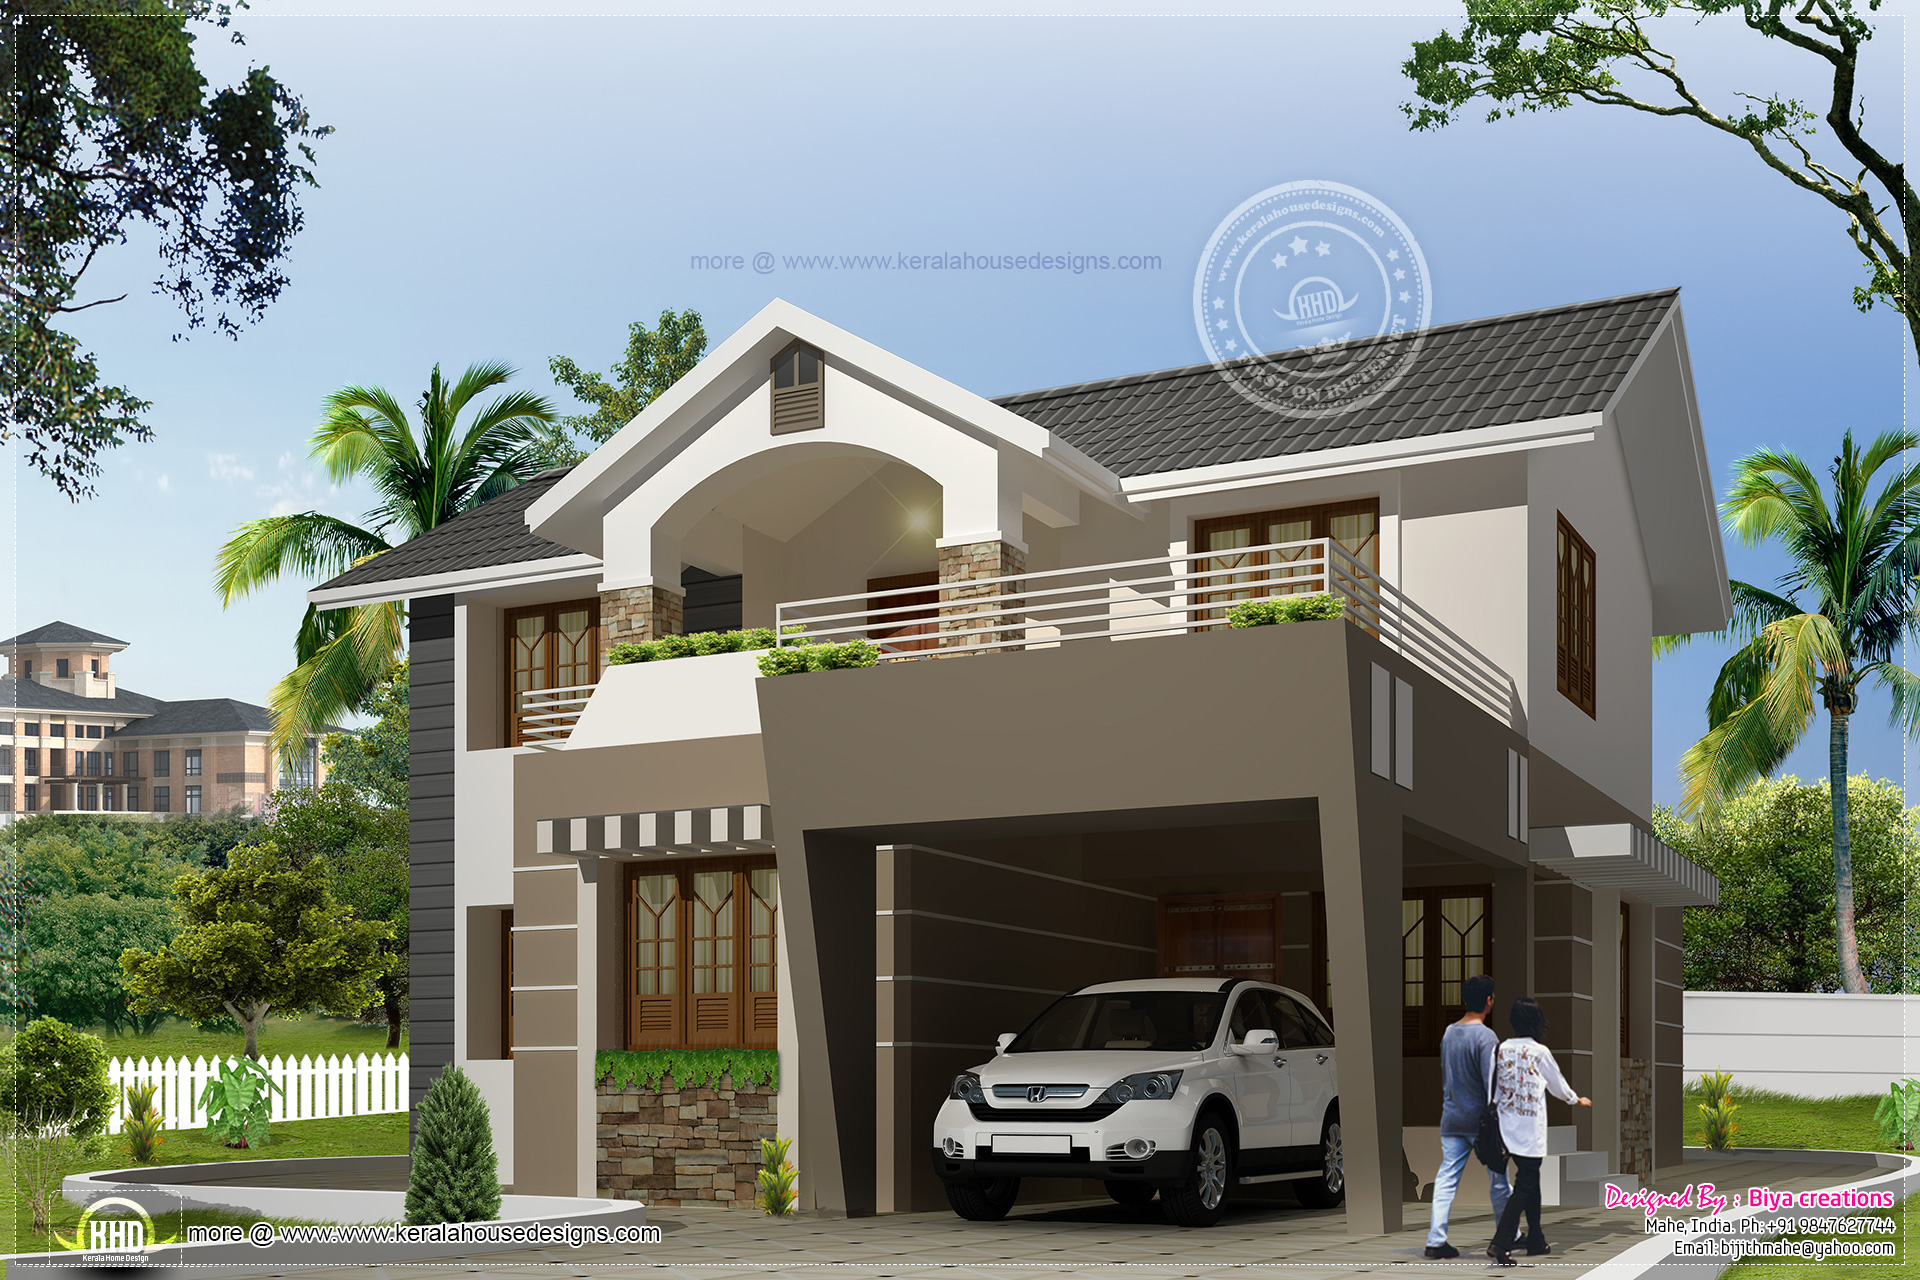 2050 modern exterior home kerala home design and floor plans Indian small house exterior design